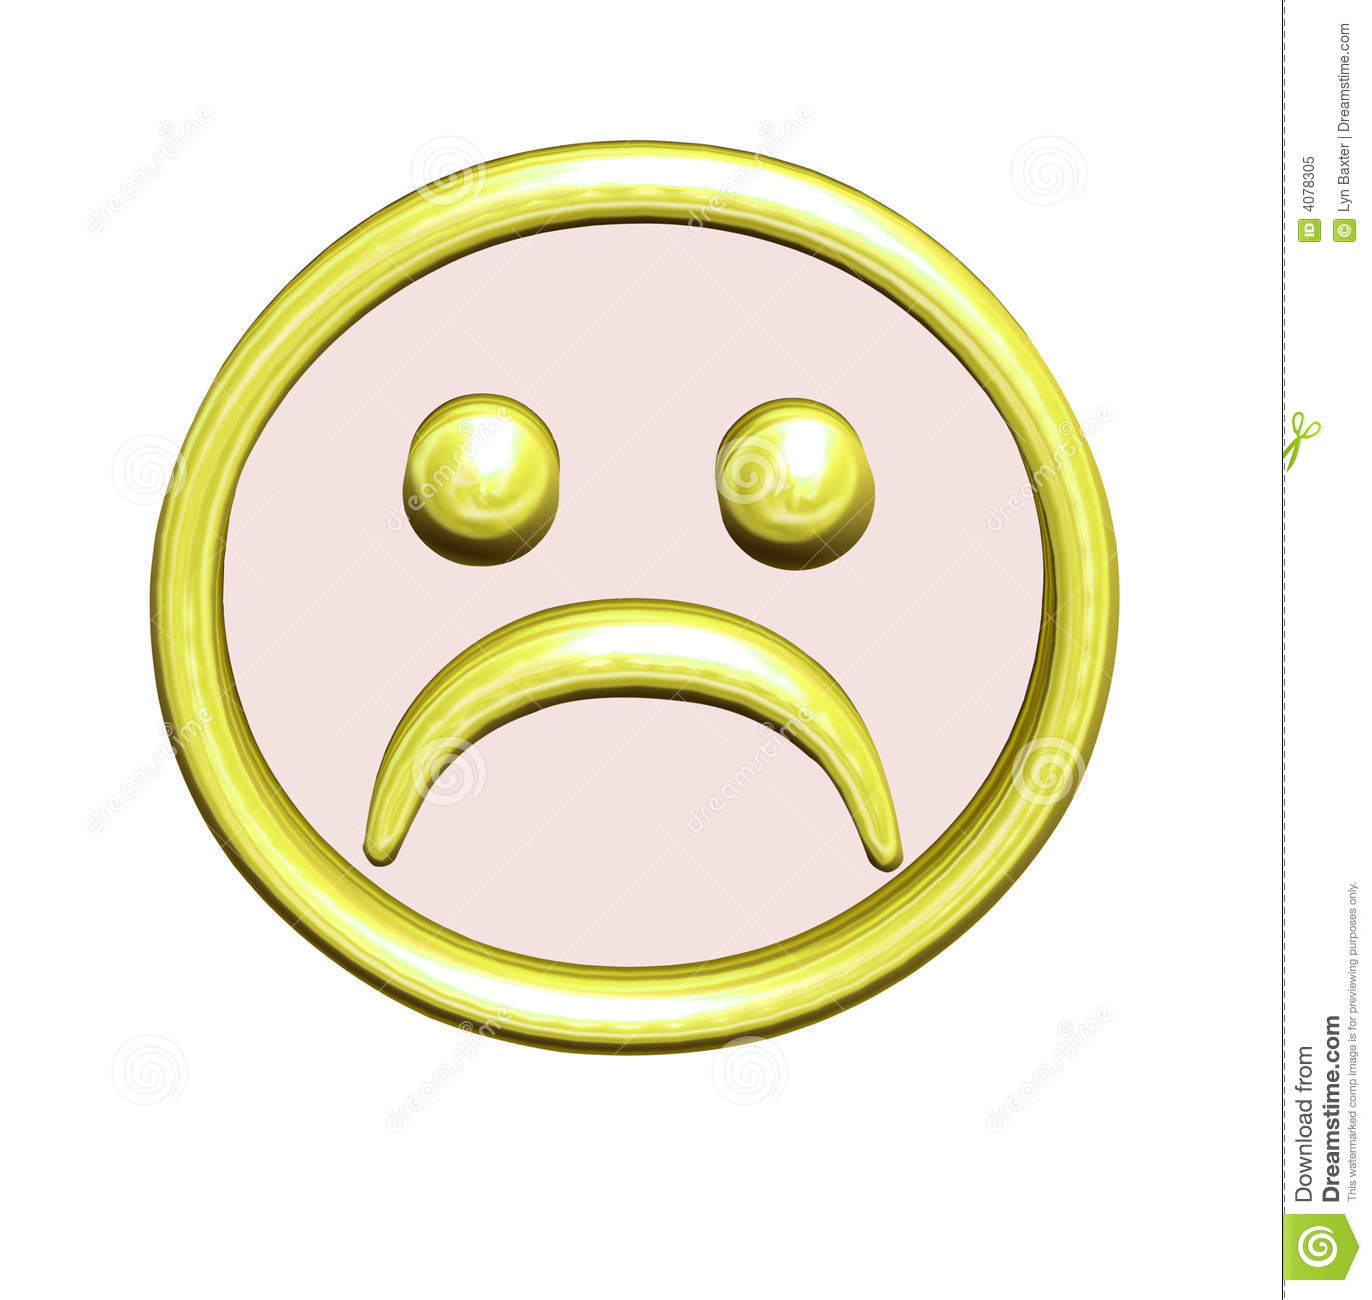 Frowny face button stock illustration illustration of gold 4078305 frowny face button buycottarizona Gallery